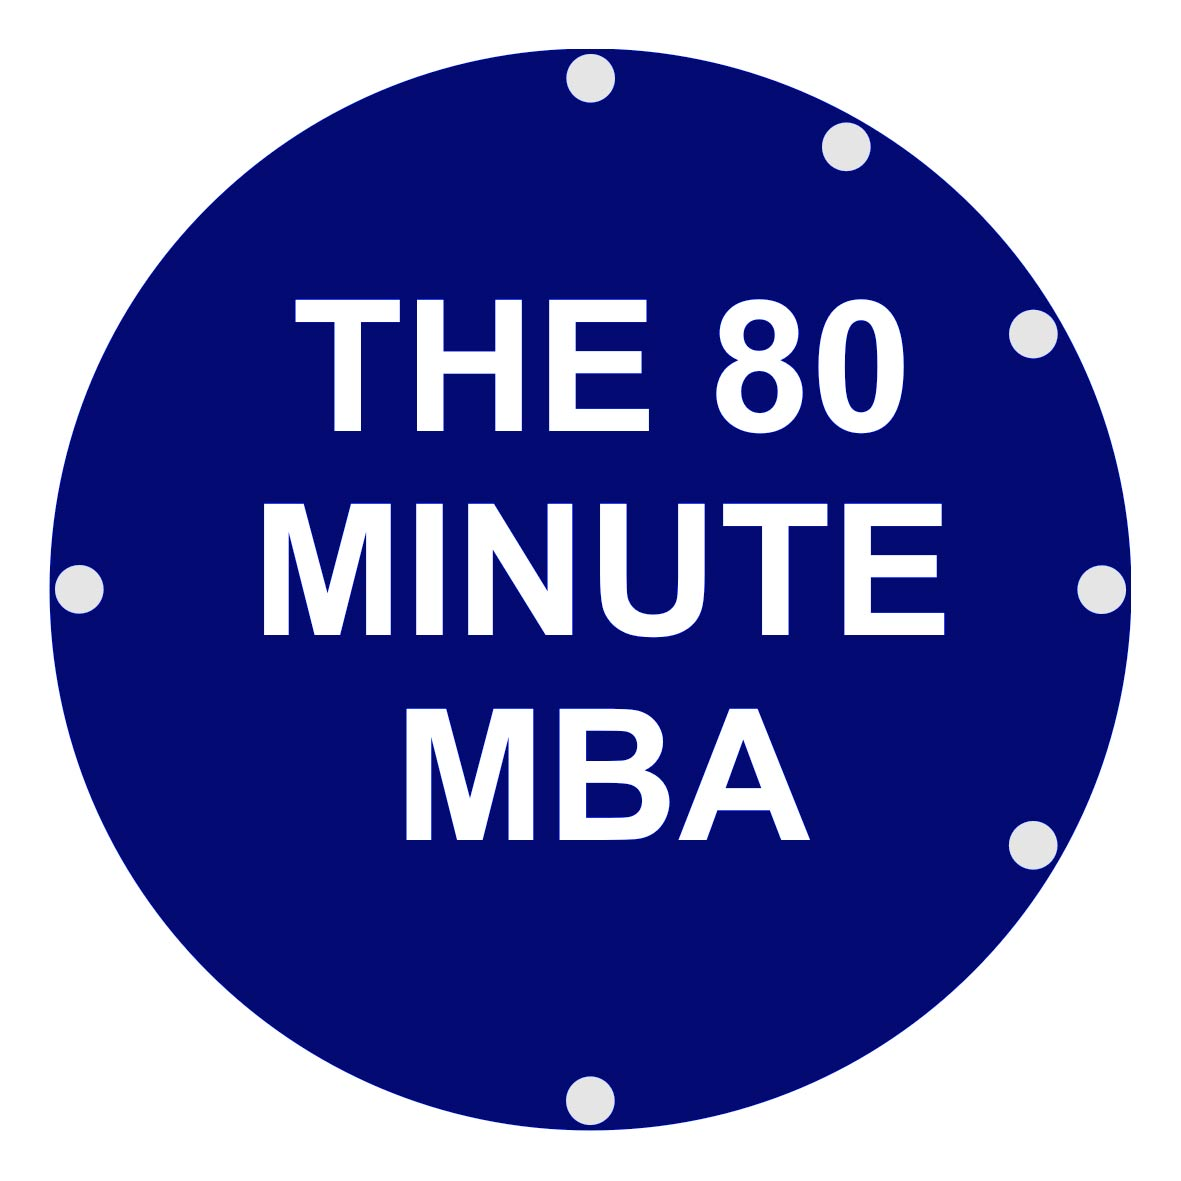 Key Lessons and Concepts from 'The 80 Minute MBA' Book by Richard Reeves and John Knell (summary by Gil Dekel, PhD.)